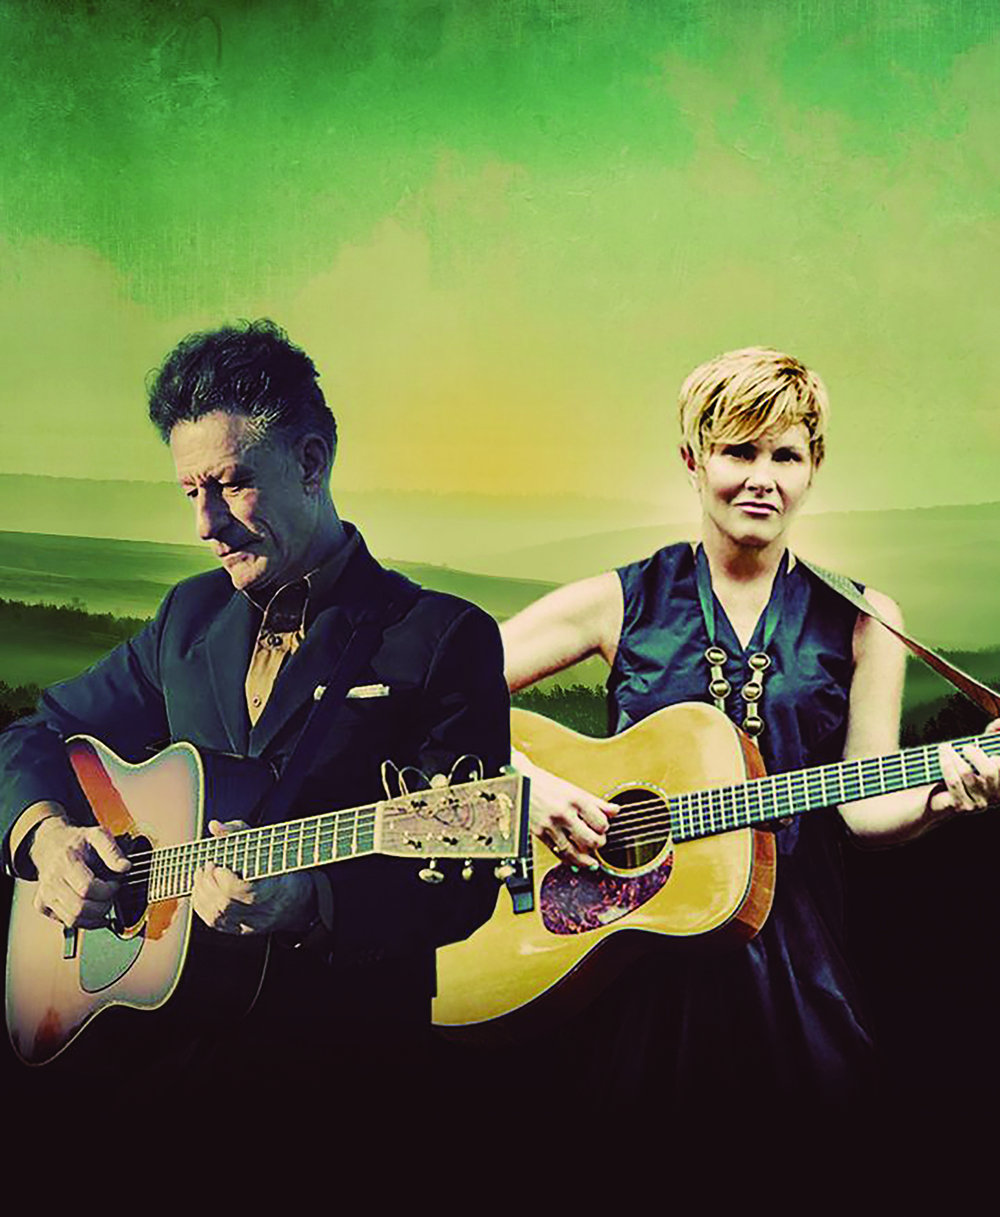 Lyle Lovett and Shawn Colvin playing guitar